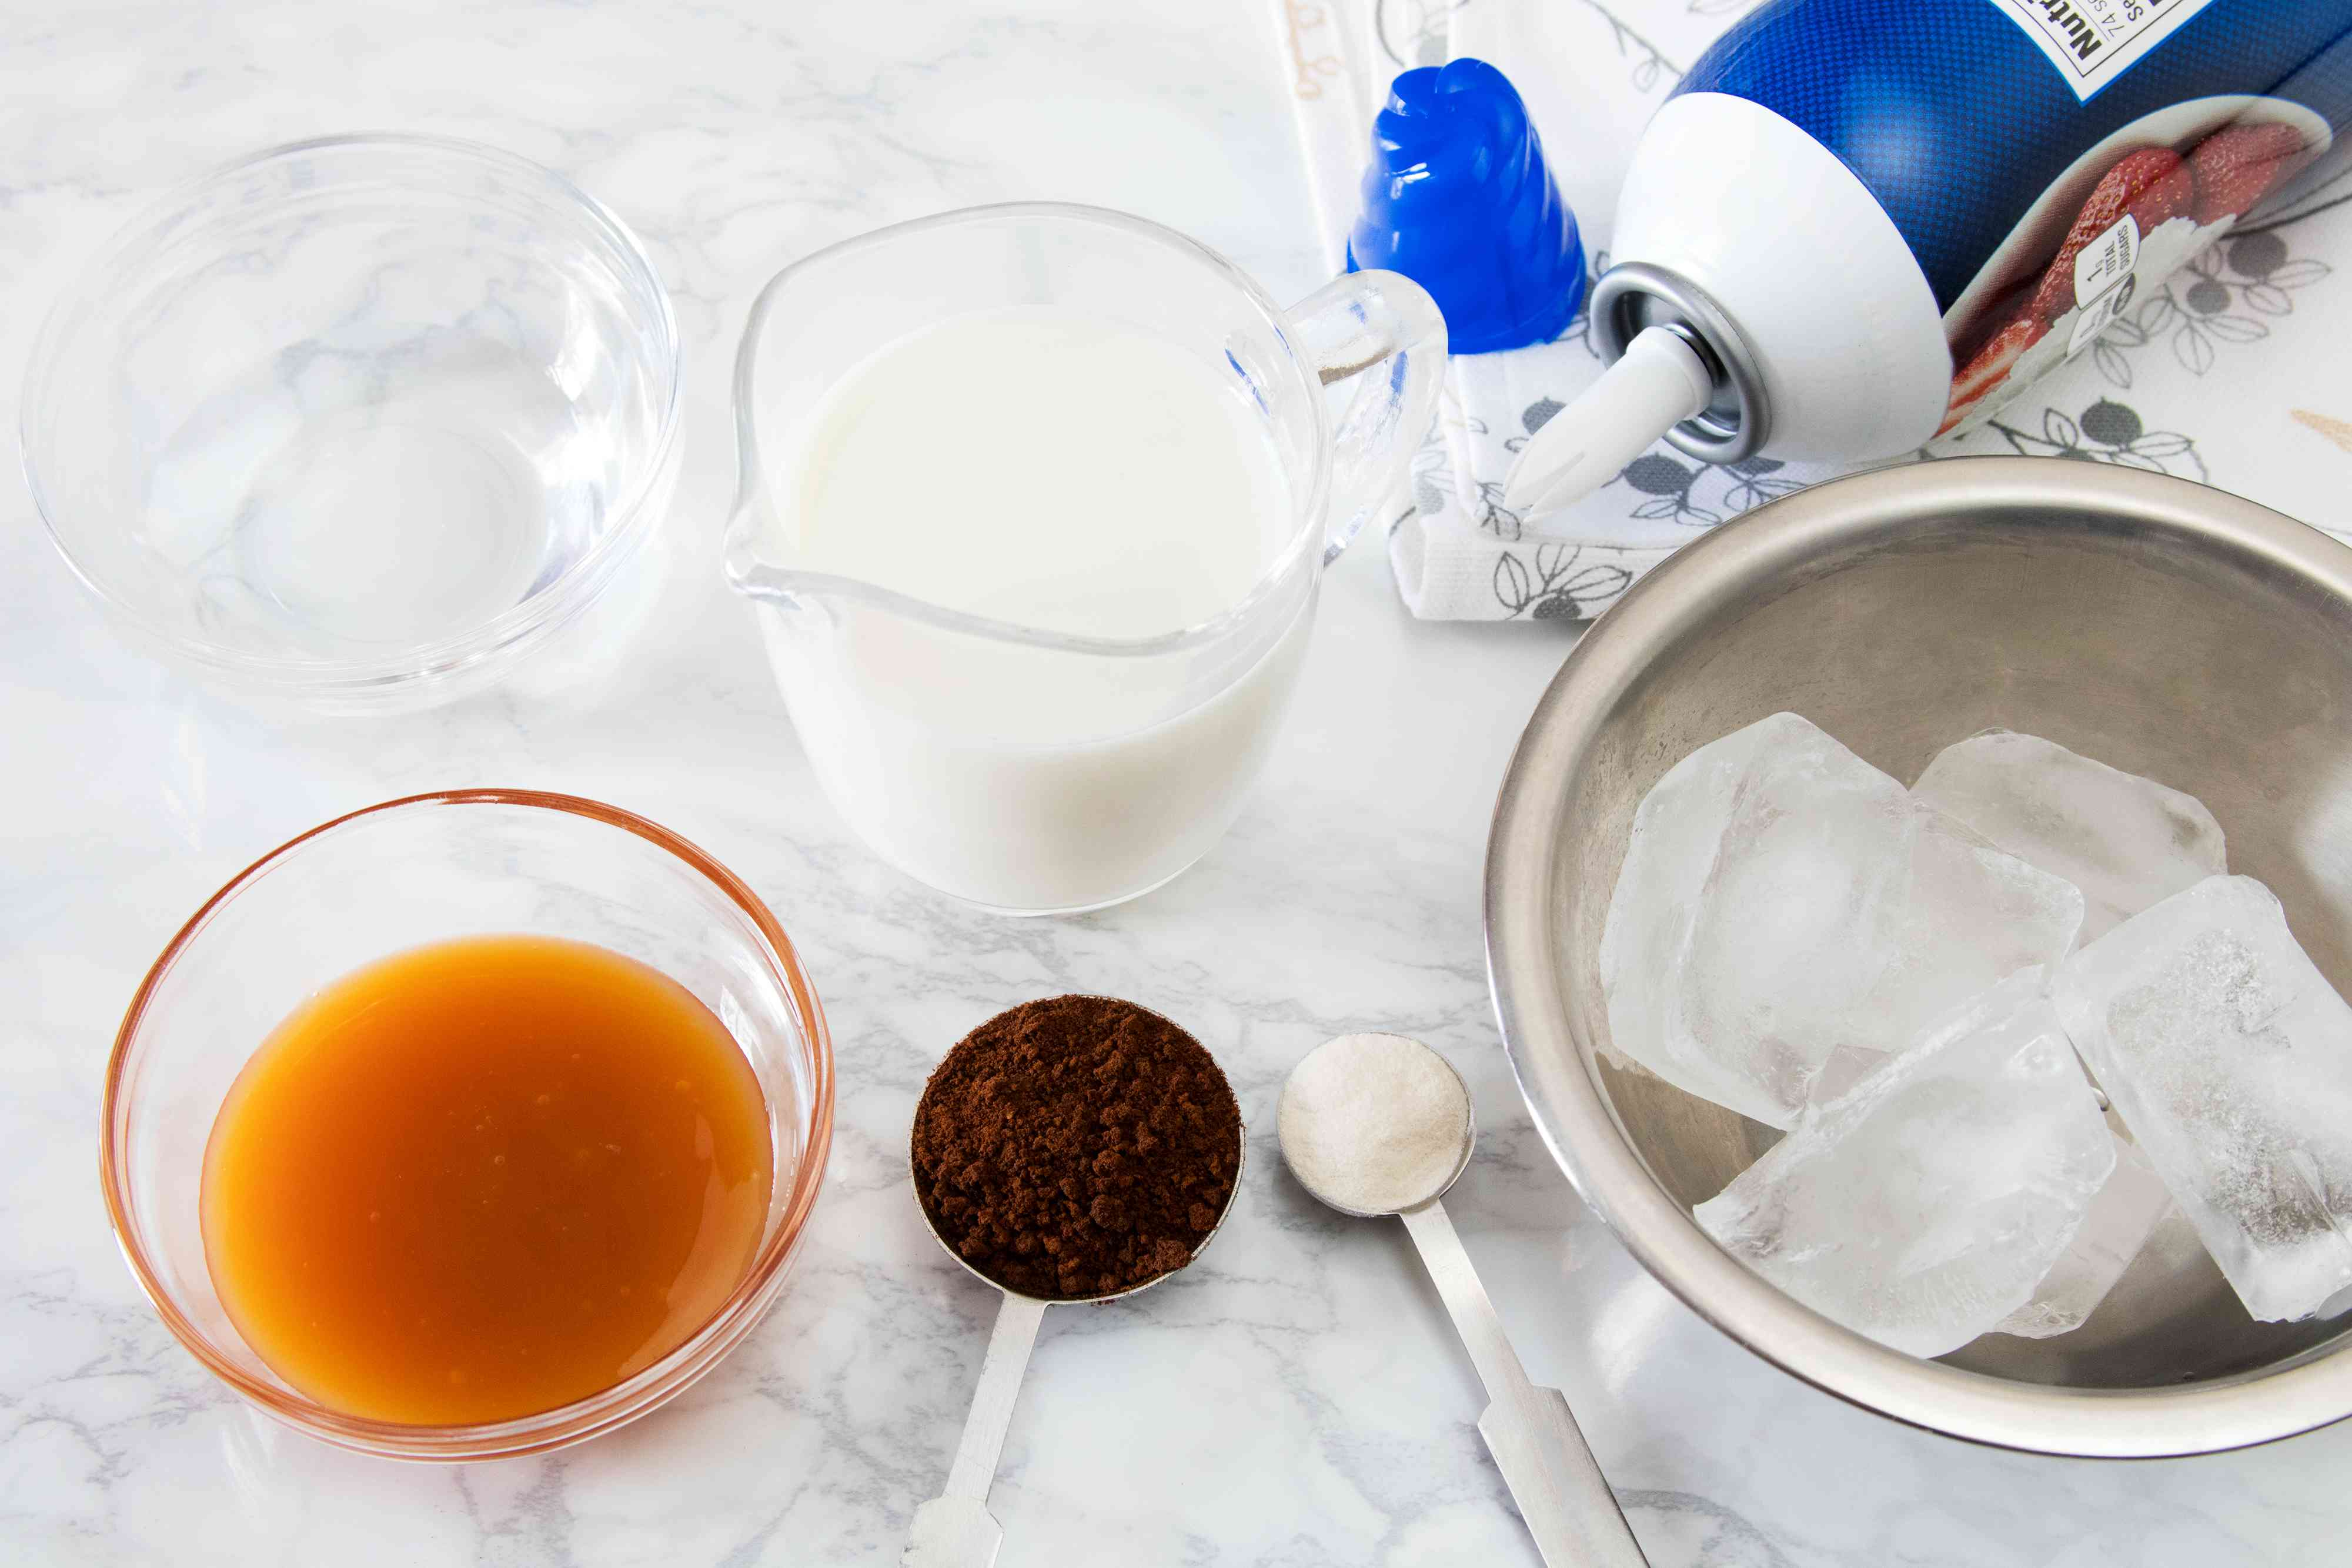 Ingredients for a Copycat Starbucks Caramel Frappuccino